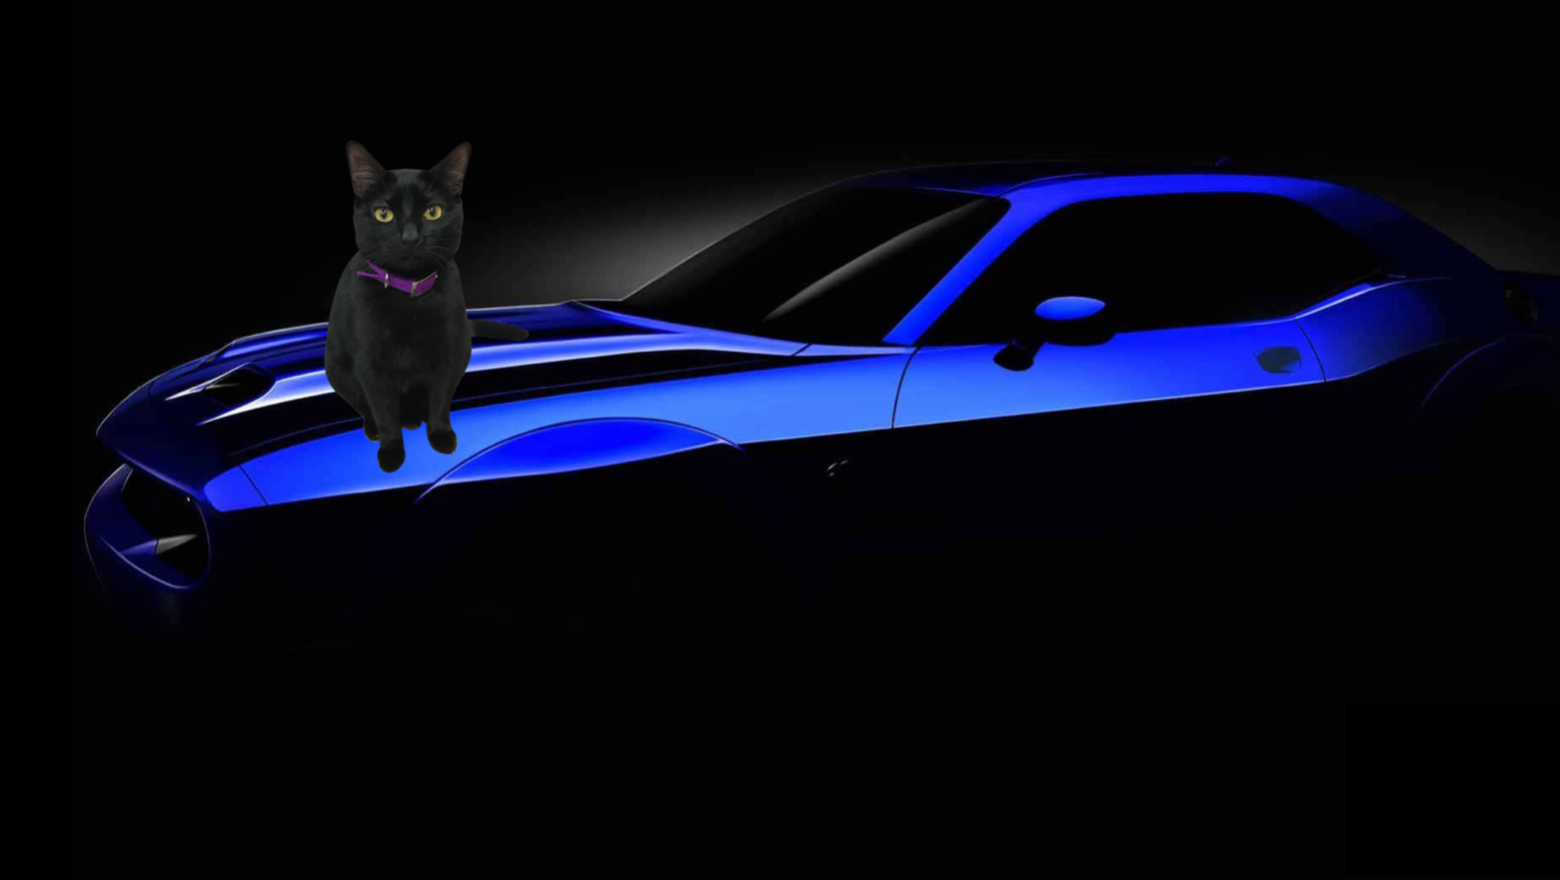 It's About Time We Make Some Optional Car Packages For Cats